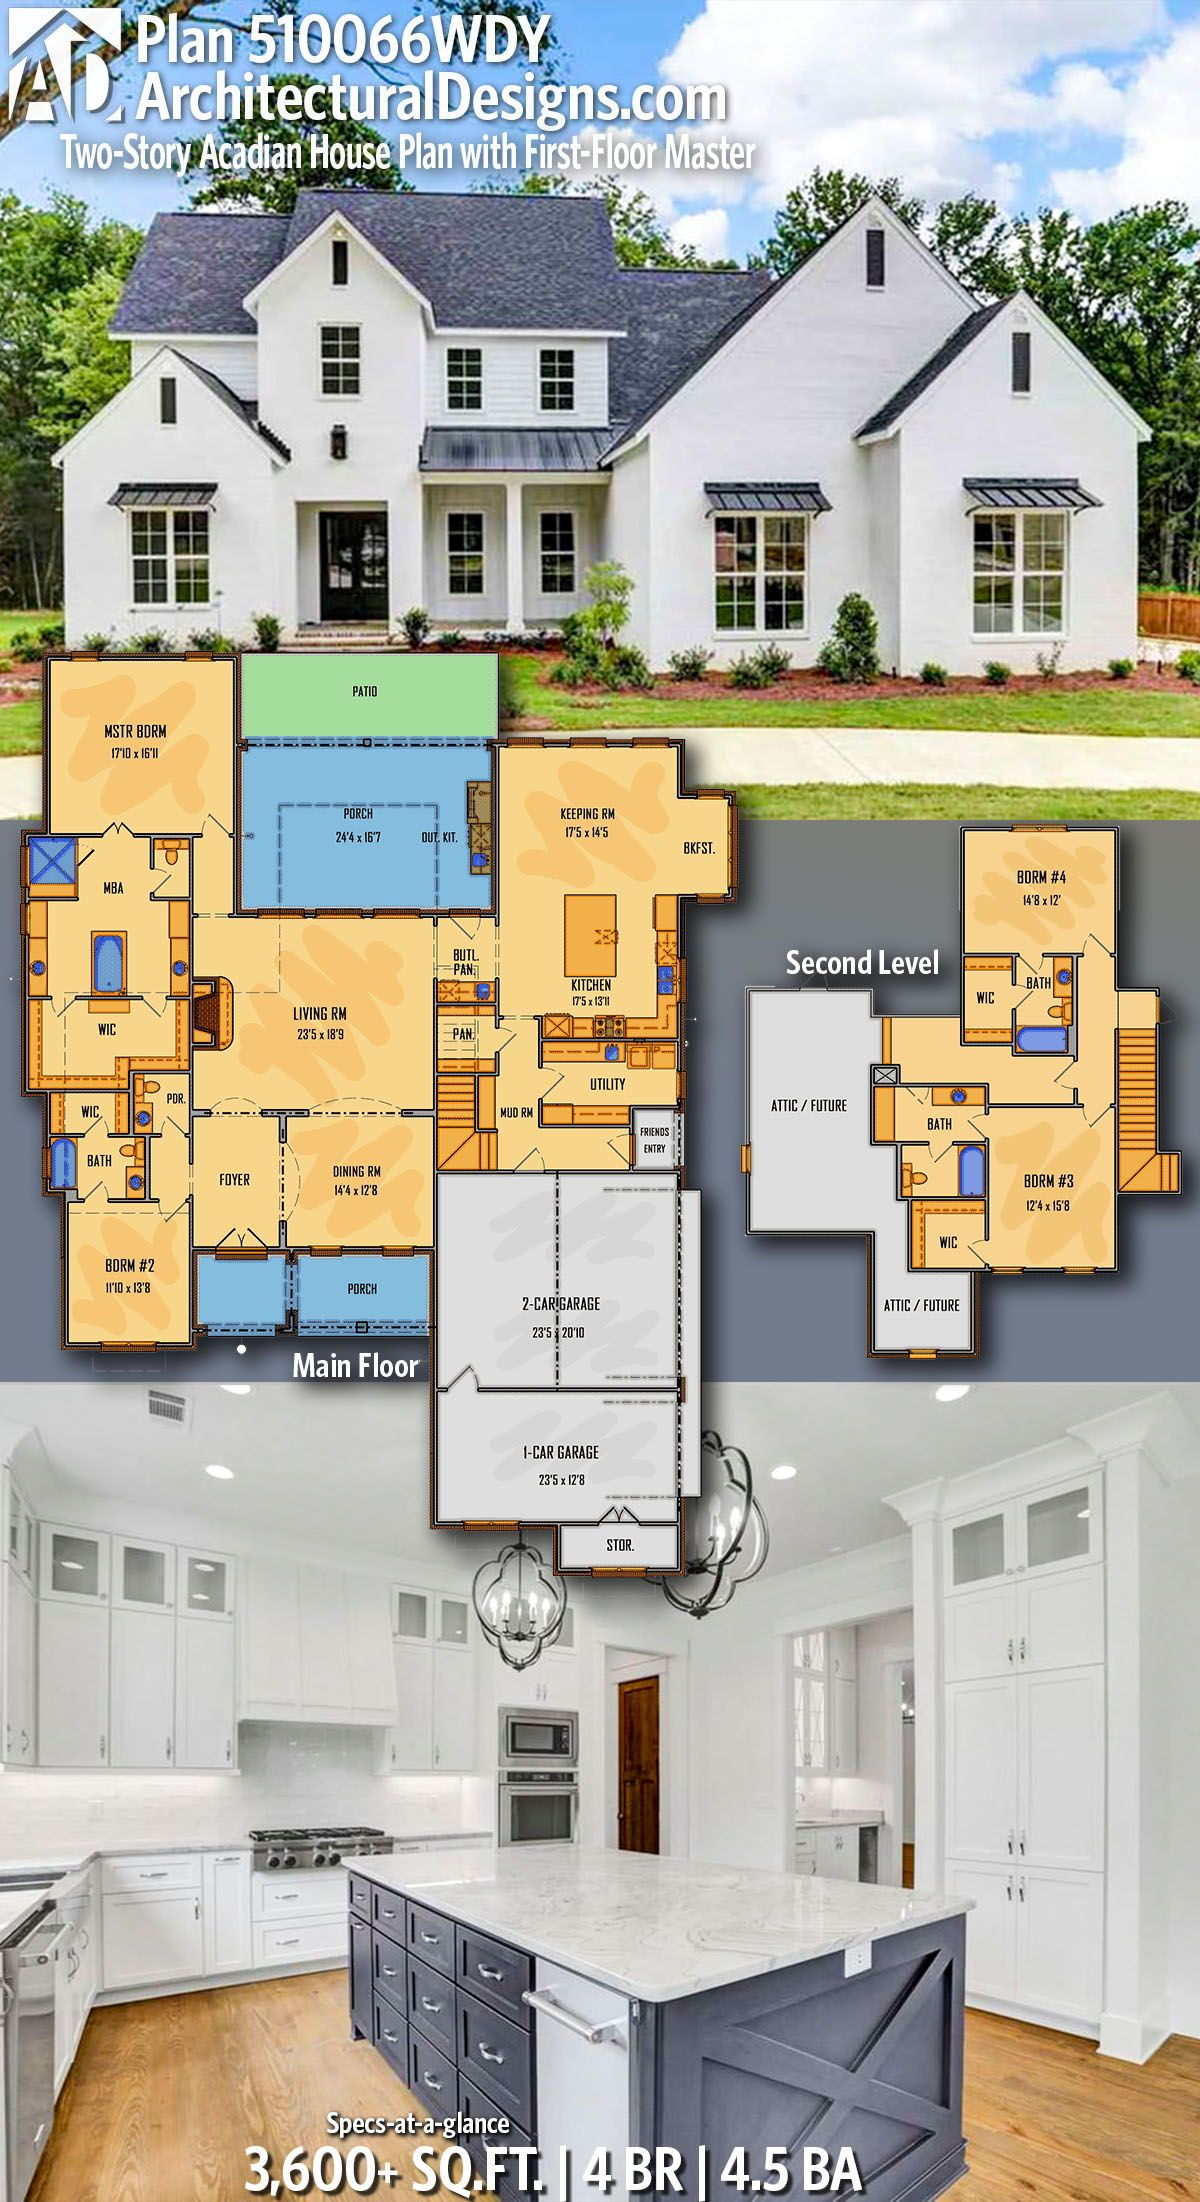 Plan 510066wdy Two Story Acadian House Plan With First Floor Master Acadian House Plans Dream House Plans House Plans